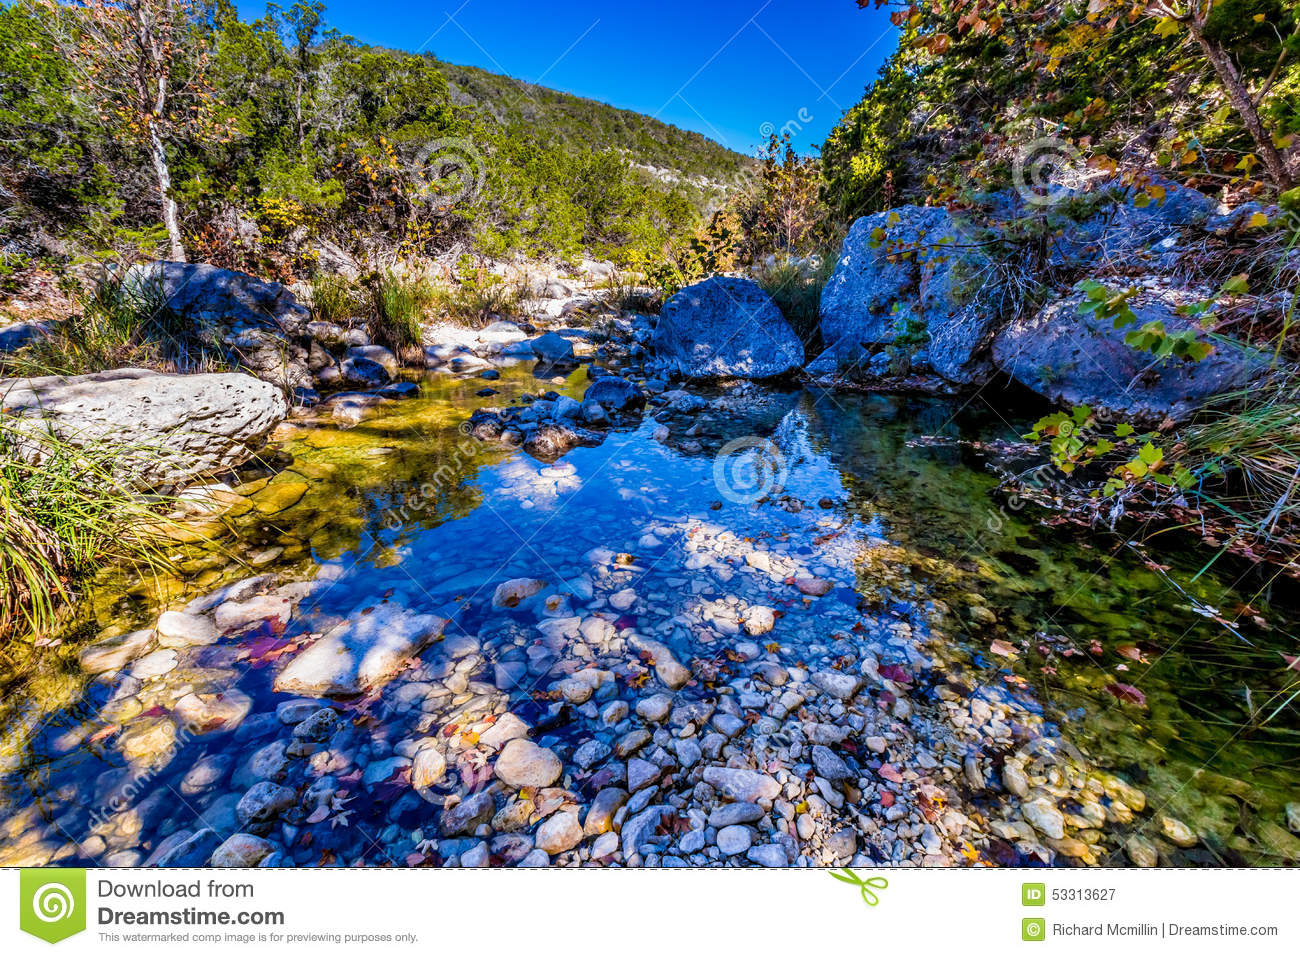 A Picturesque Scene with Fall Foliage on a Babbling Brook and Large Boulders at Lost Maples